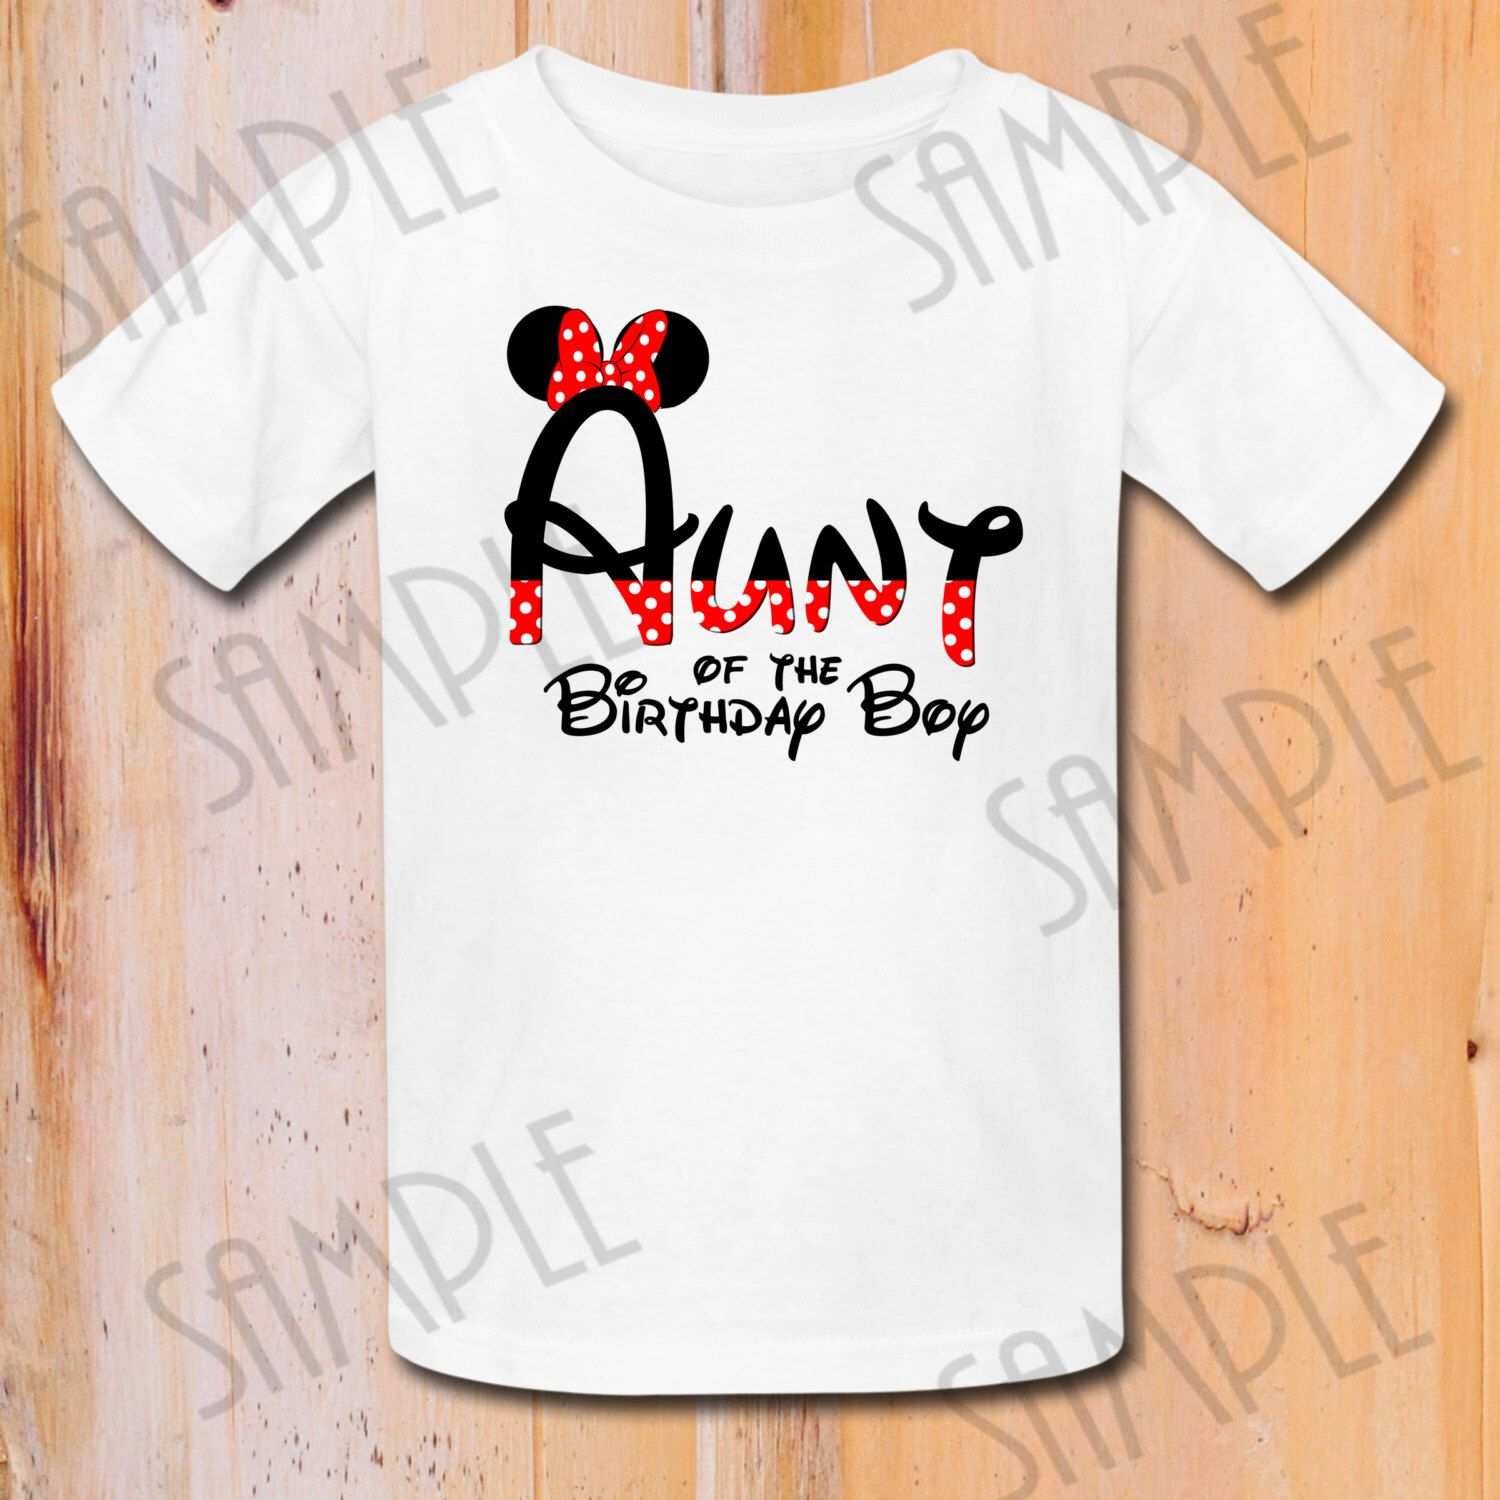 INSTANT DOWNLOAD Disney Minnie Mouse Iron On Transfer Aunt Birthday Party Printable